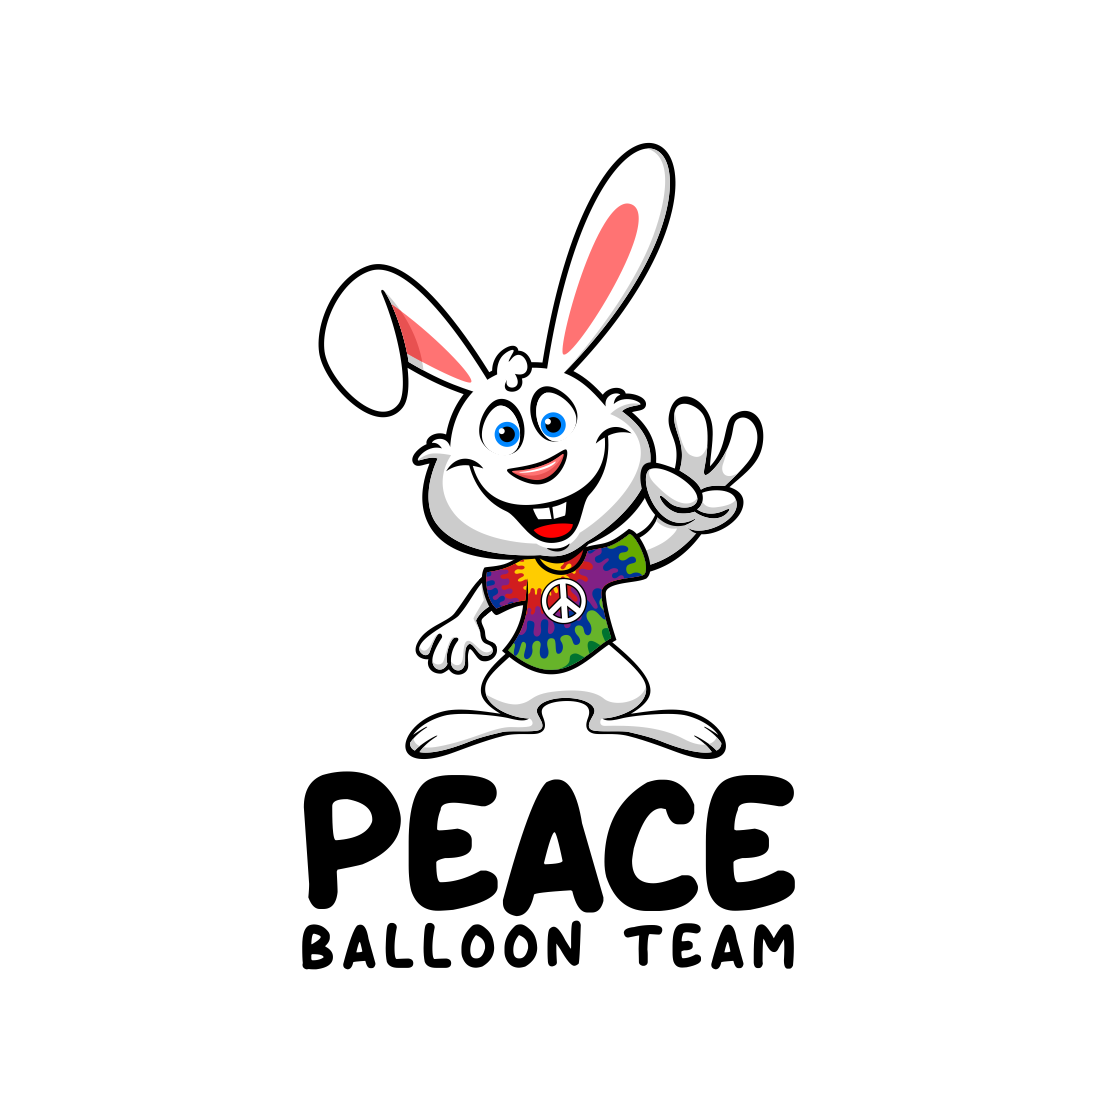 PEACE BUNNY Balloon Team